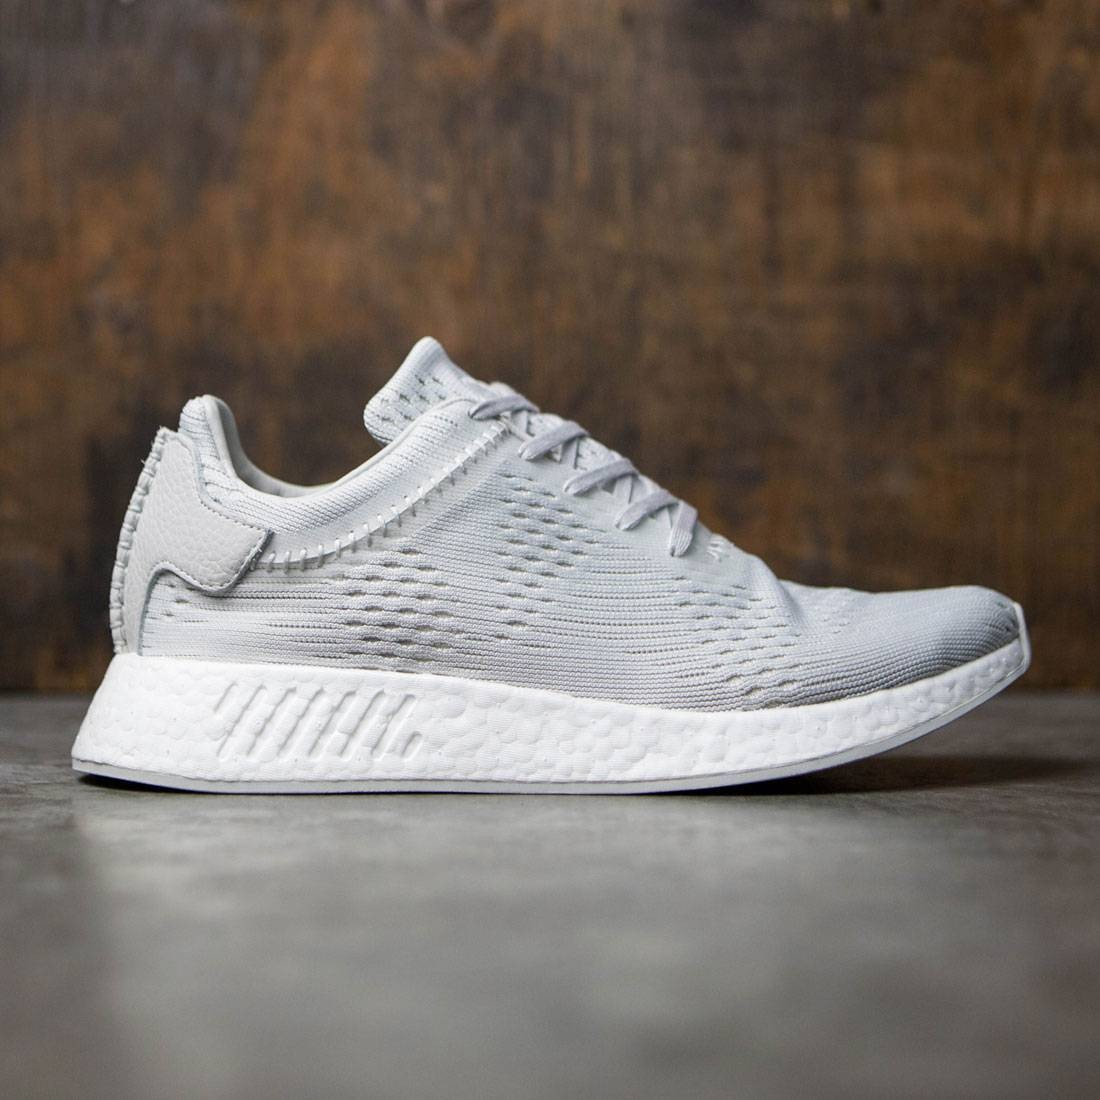 94911b985649 Adidas x Wings + Horns Men NMD R2 Primeknit gray hint